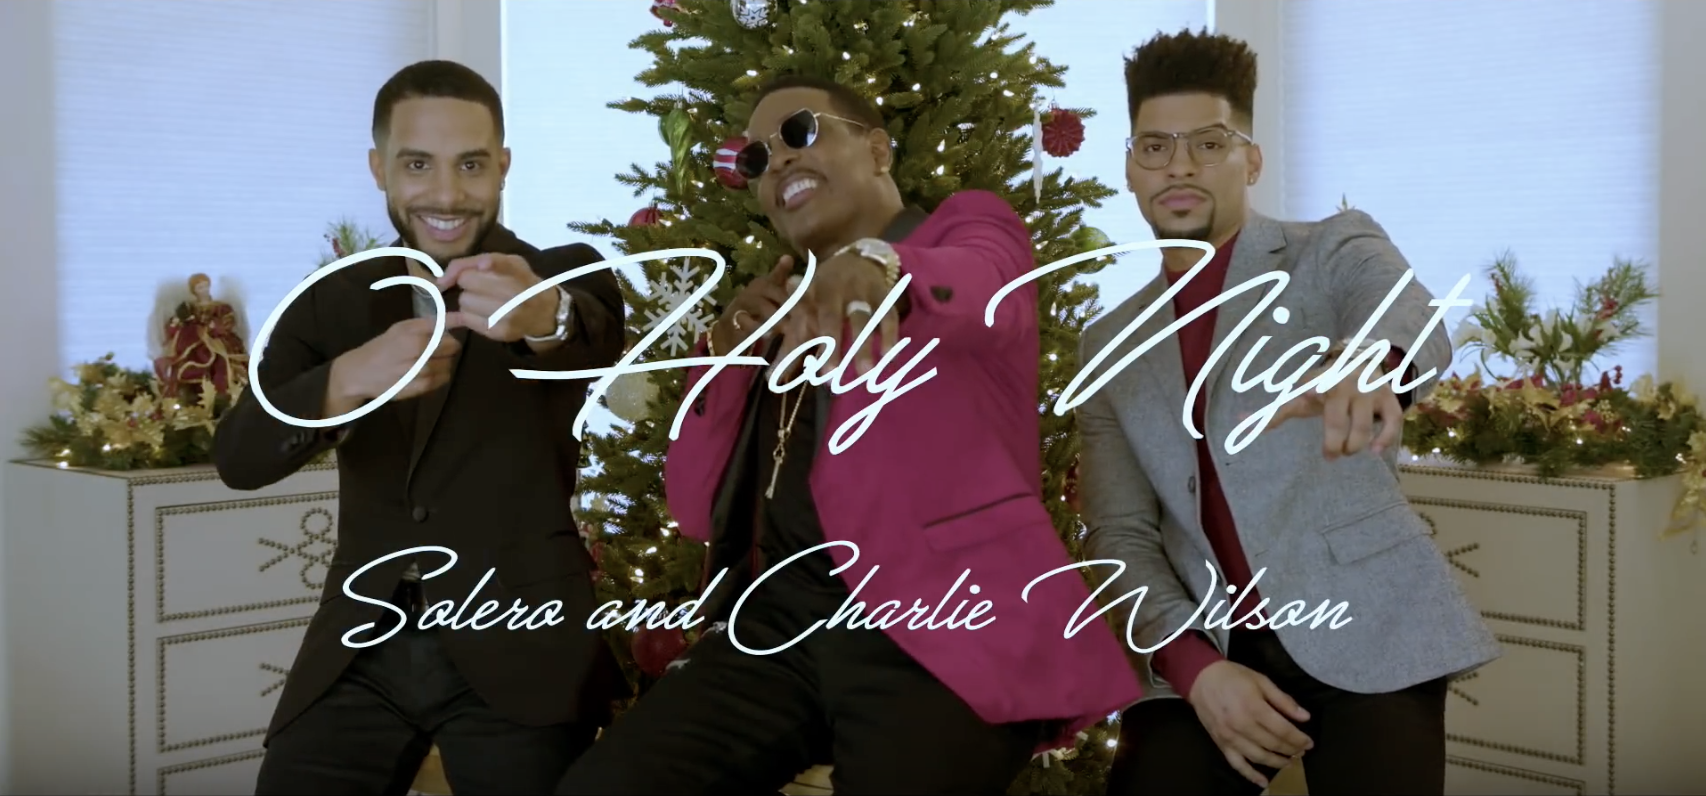 Solero & Charlie Wilson - O Holy Night (SOLERO & Charlie Wilson Official Cover)